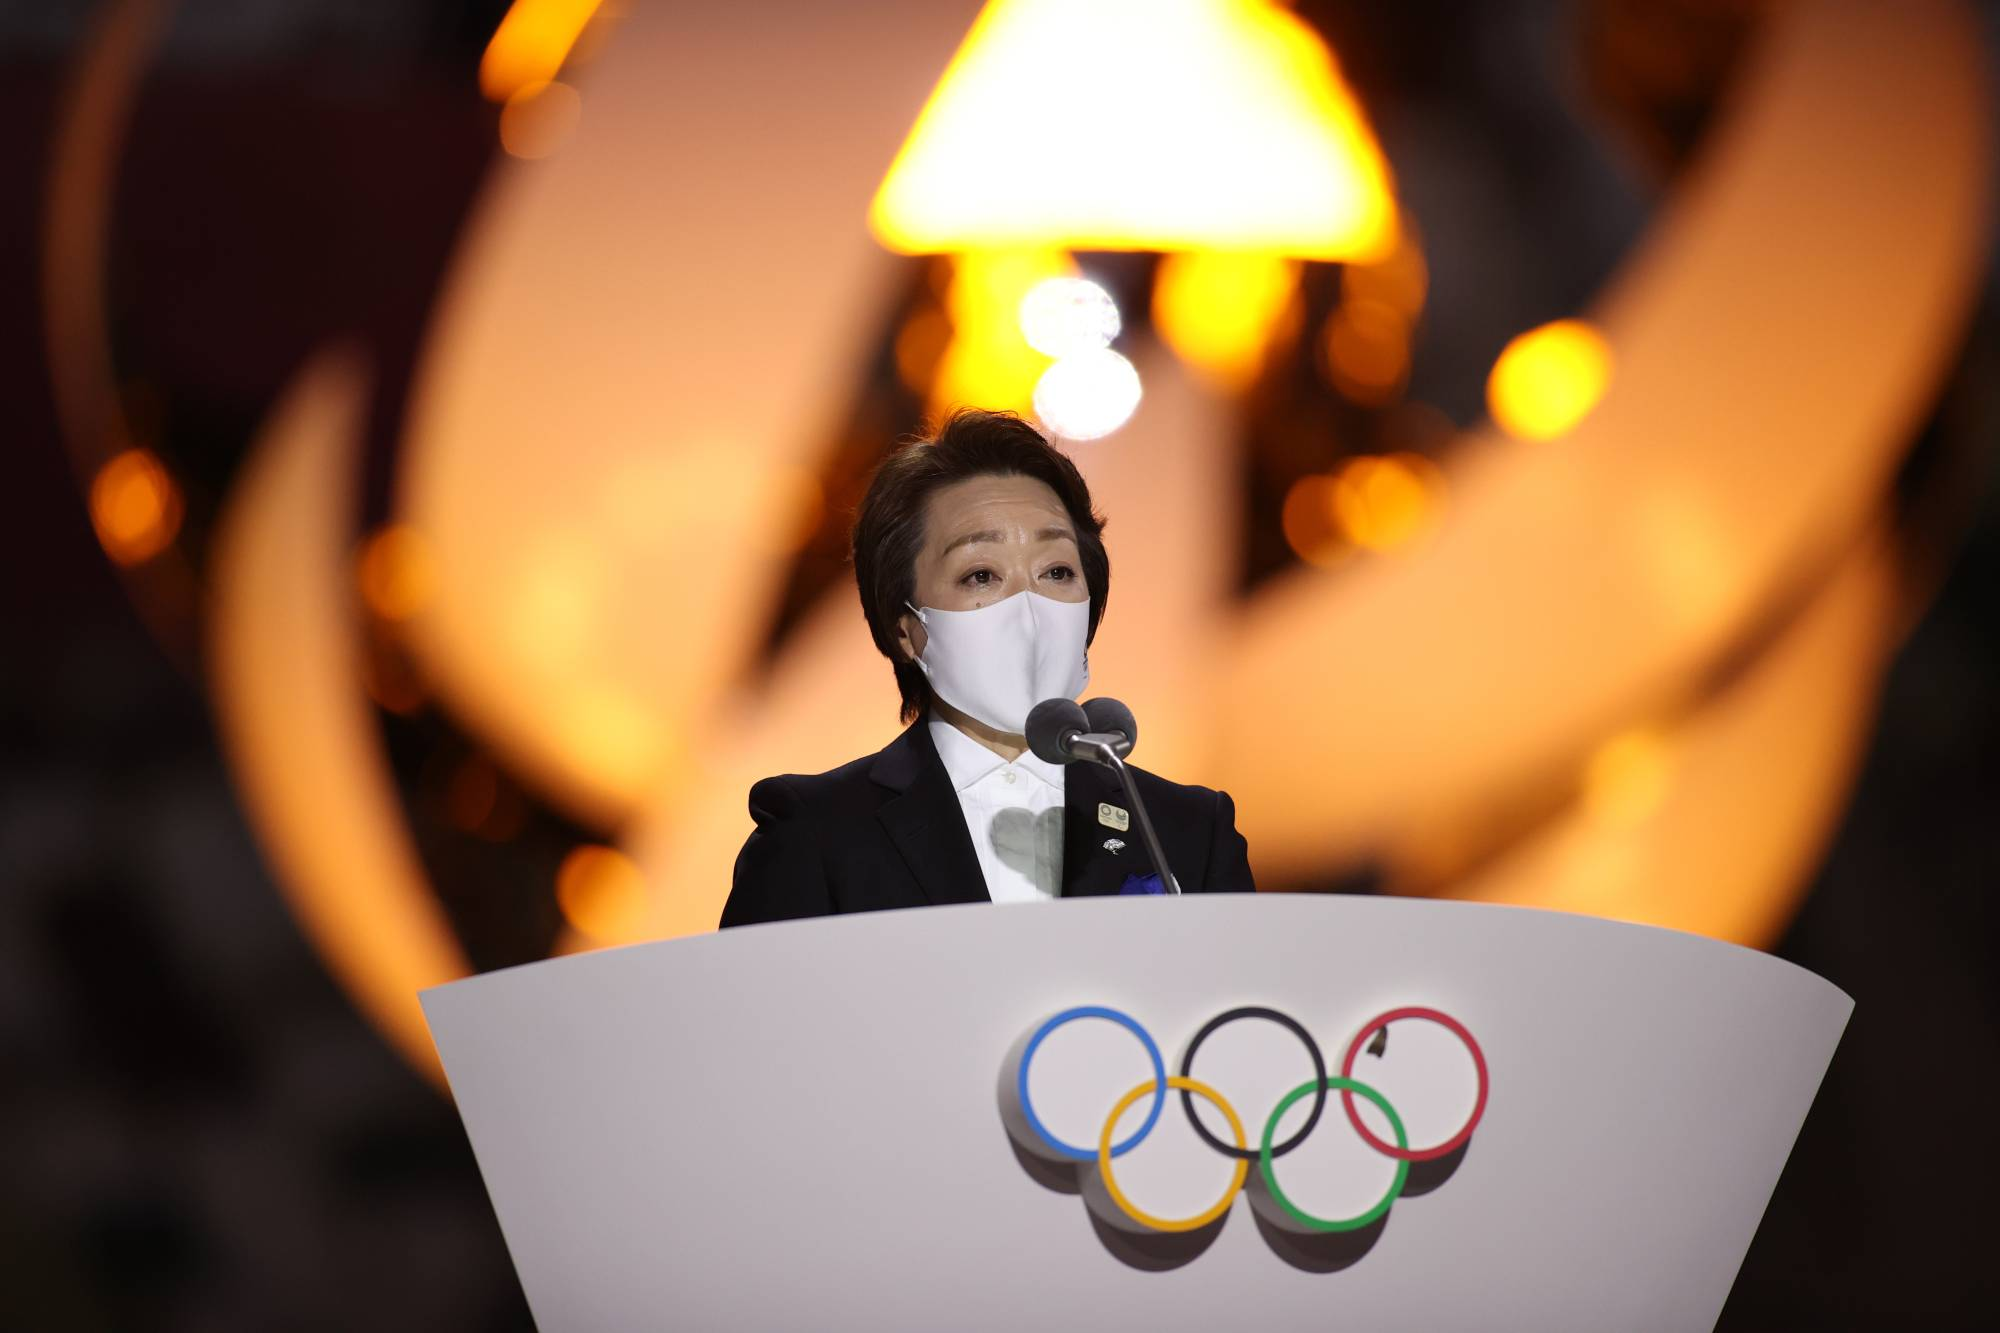 Tokyo 2020 President Seiko Hashimoto delivers a speech during the closing ceremony of Tokyo 2020 Olympics | POOL VIA REUTERS